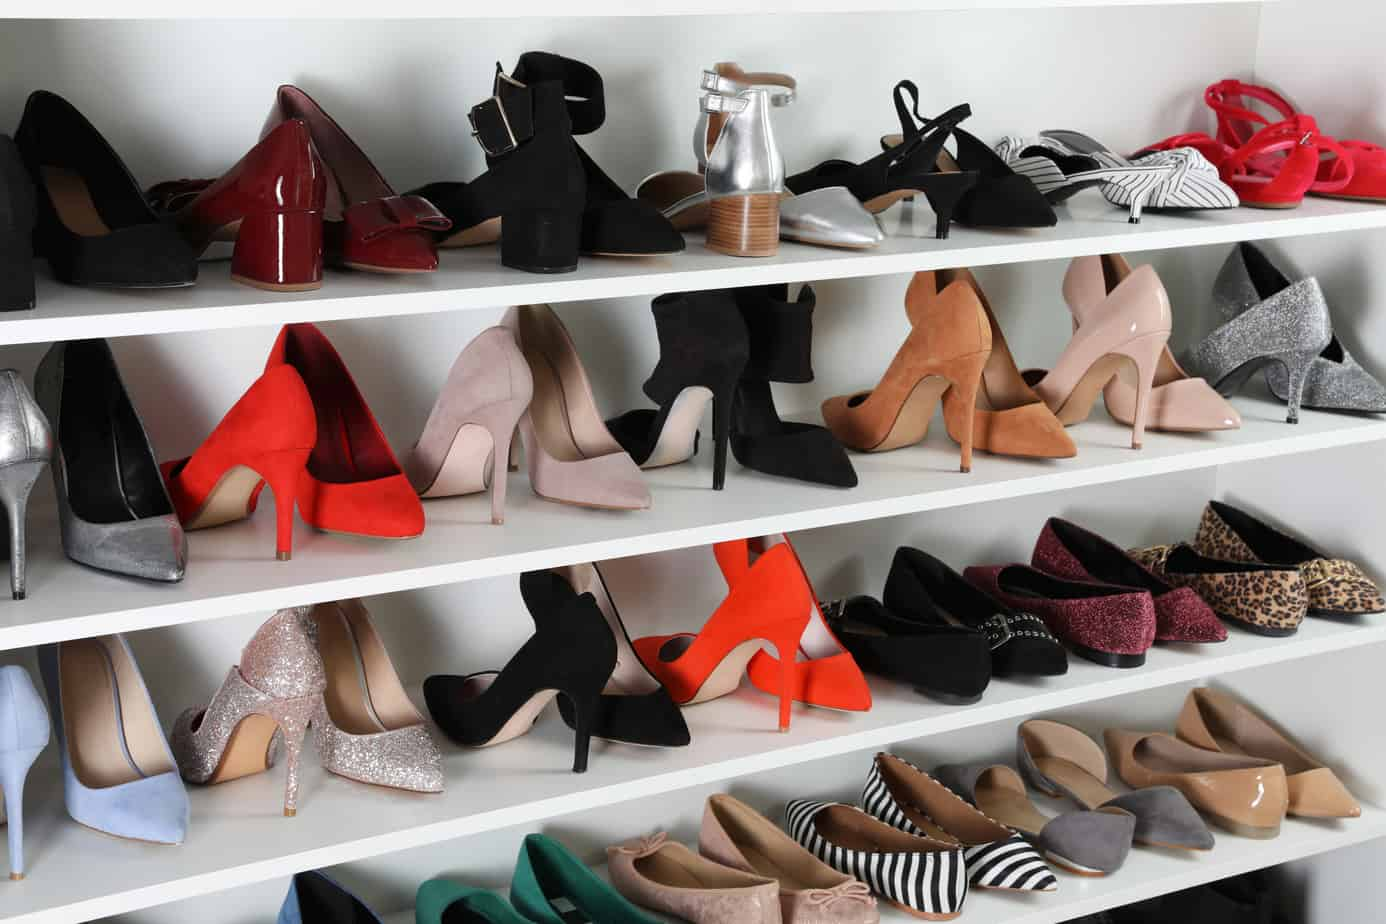 How to store your shoes properly